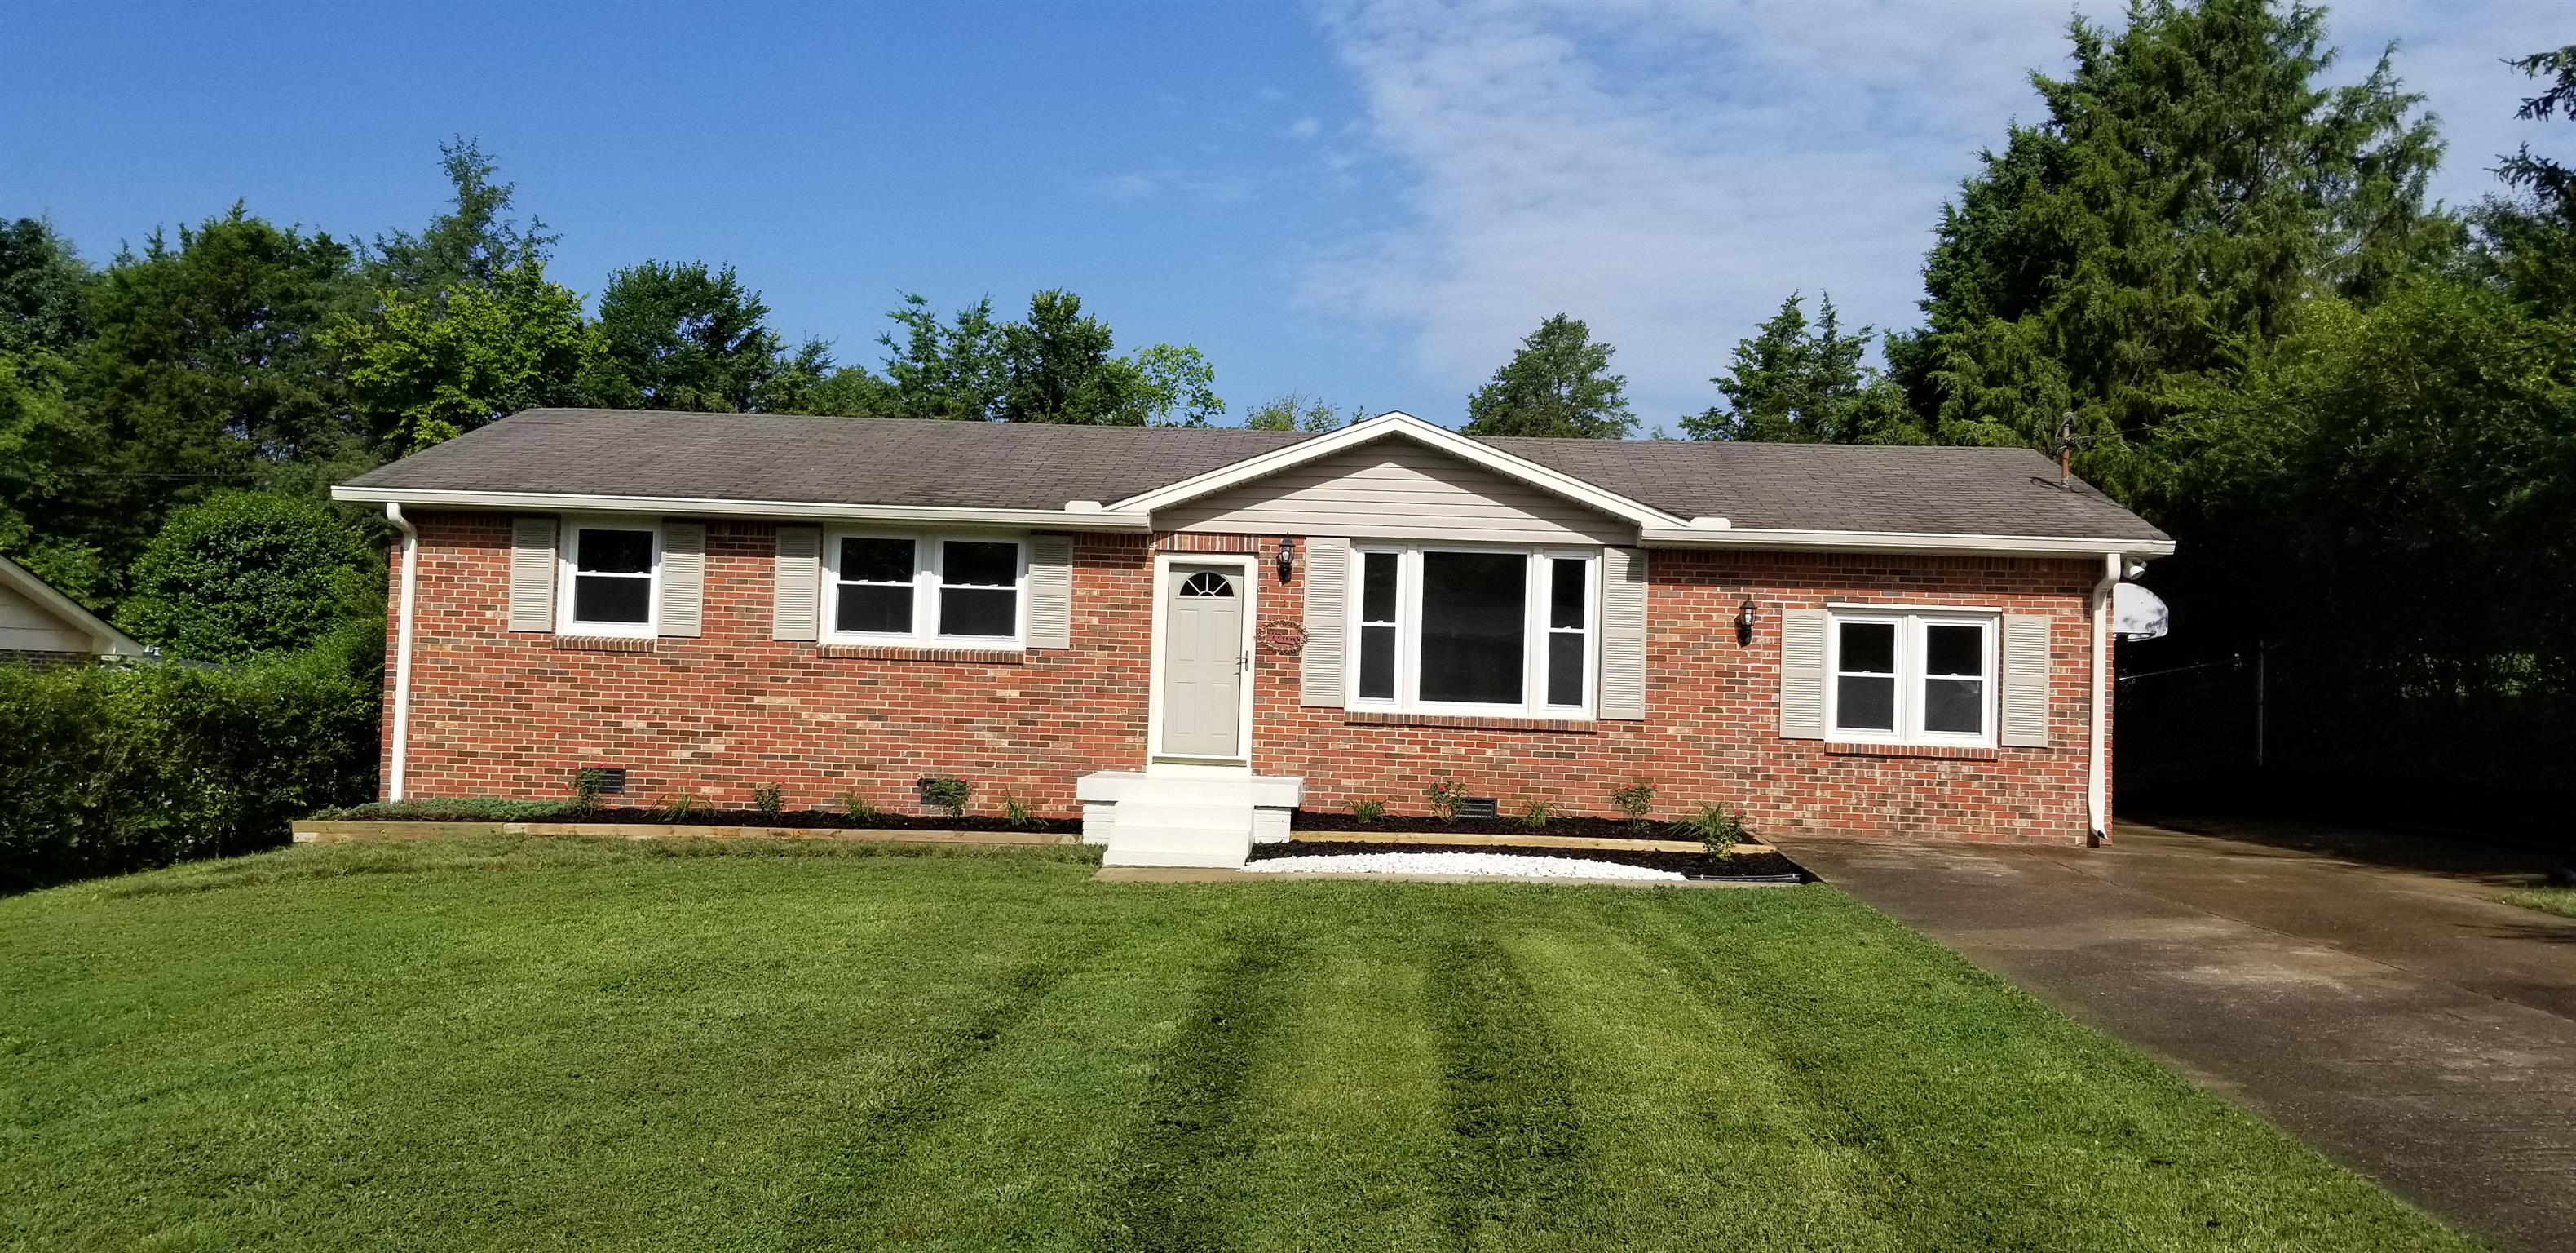 207 S Valley Rd, Hendersonville in Sumner County County, TN 37075 Home for Sale